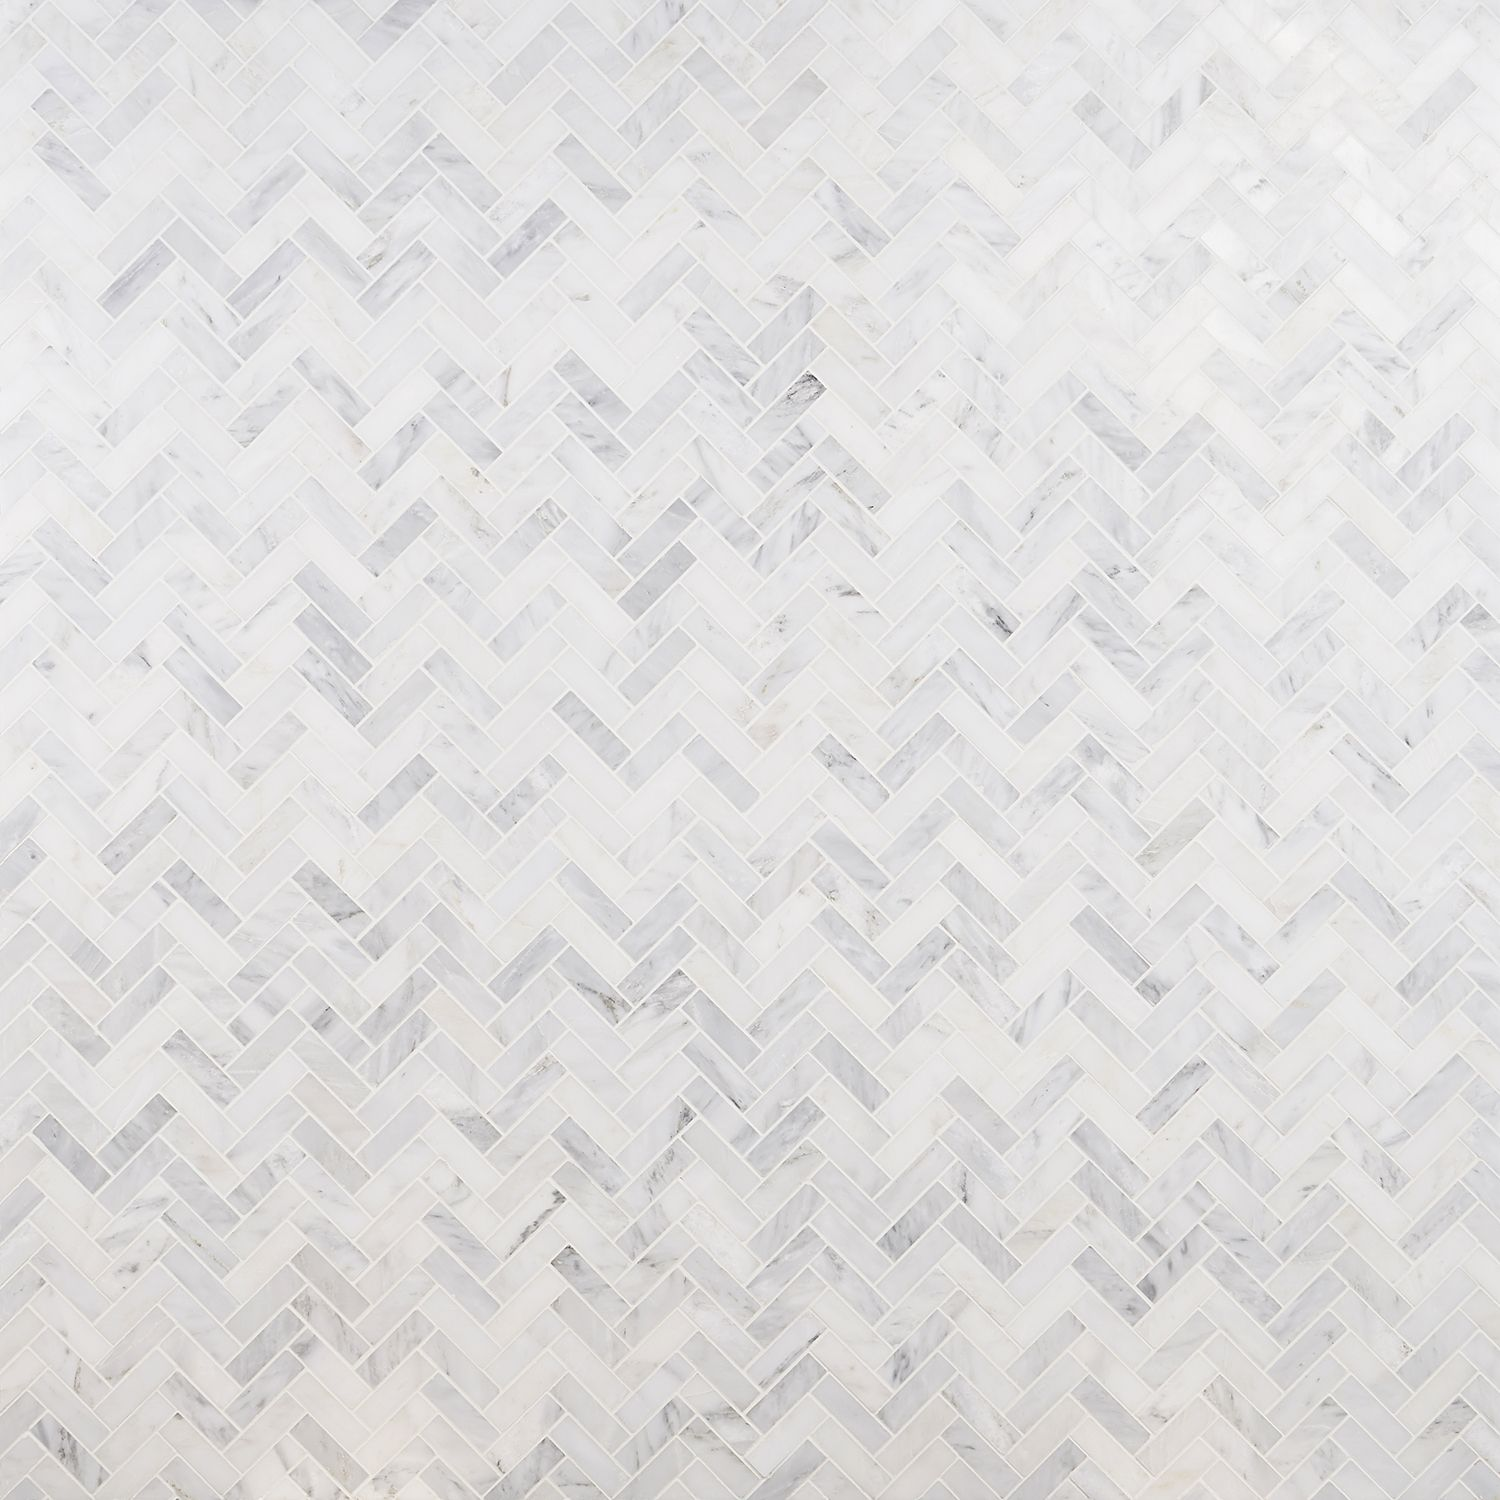 Shop For Asian Statuary Herringbone 1x3 Marble Tile At Tilebar Com